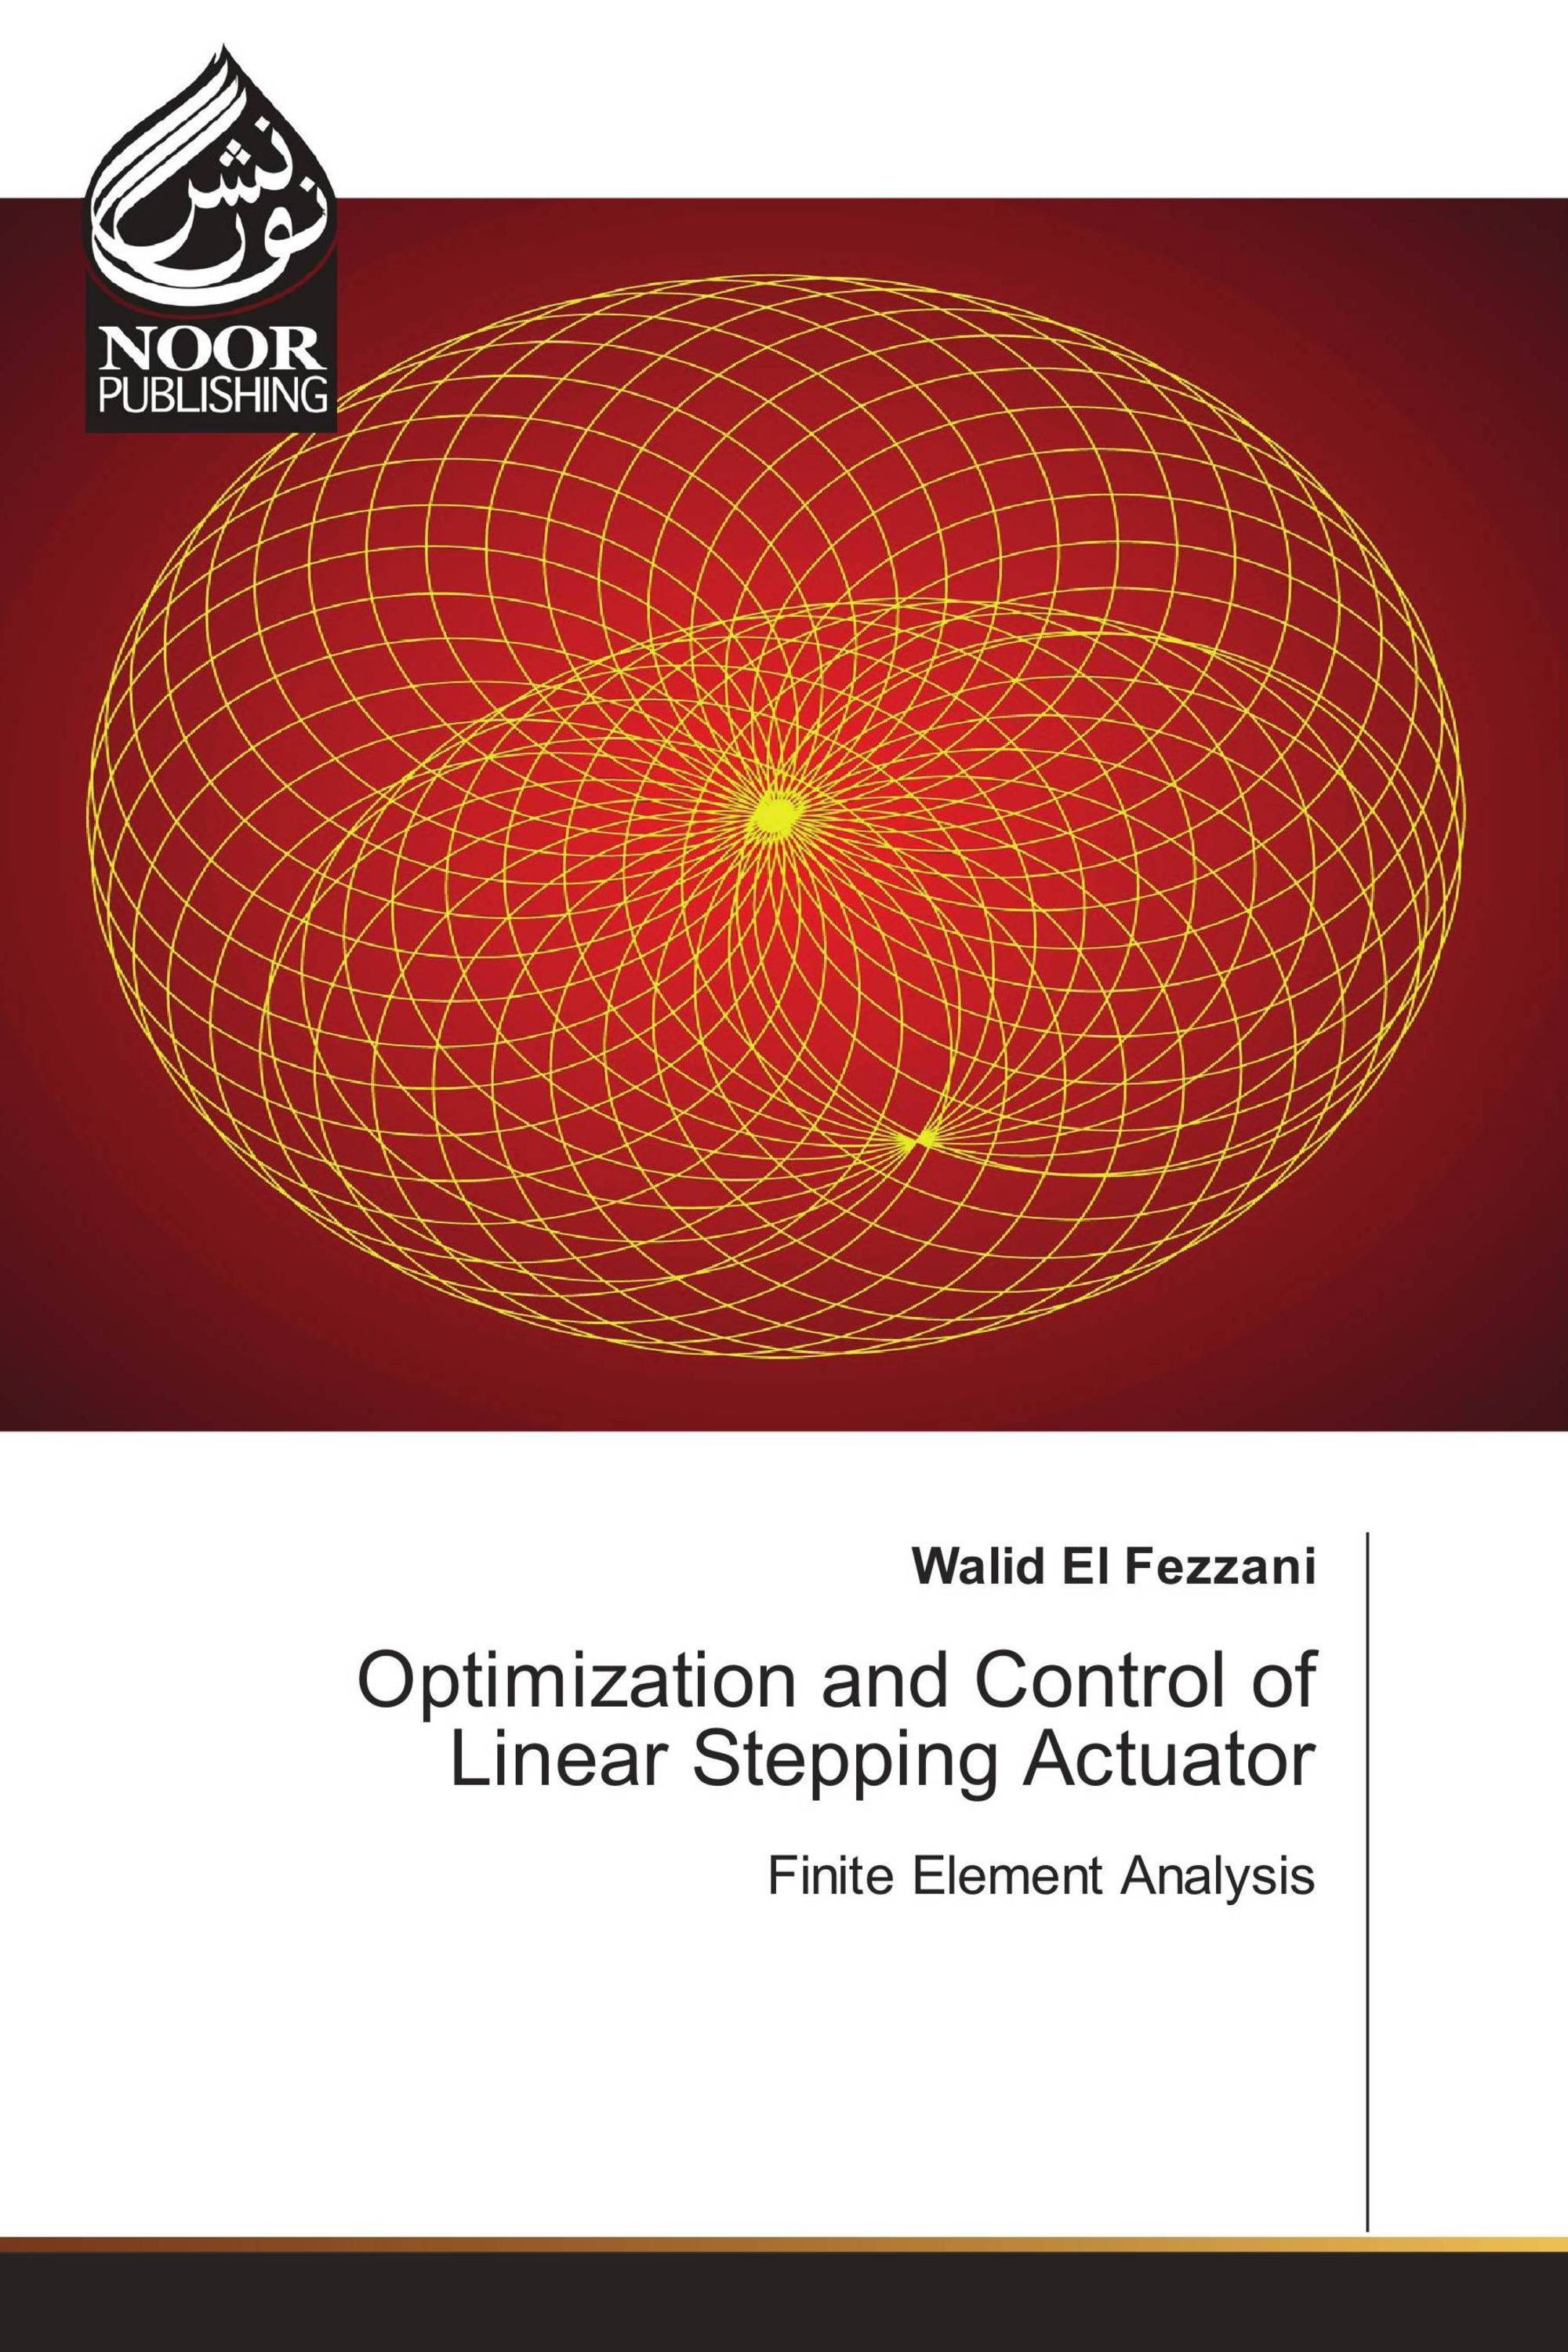 Optimization and Control of Linear Stepping Actuator